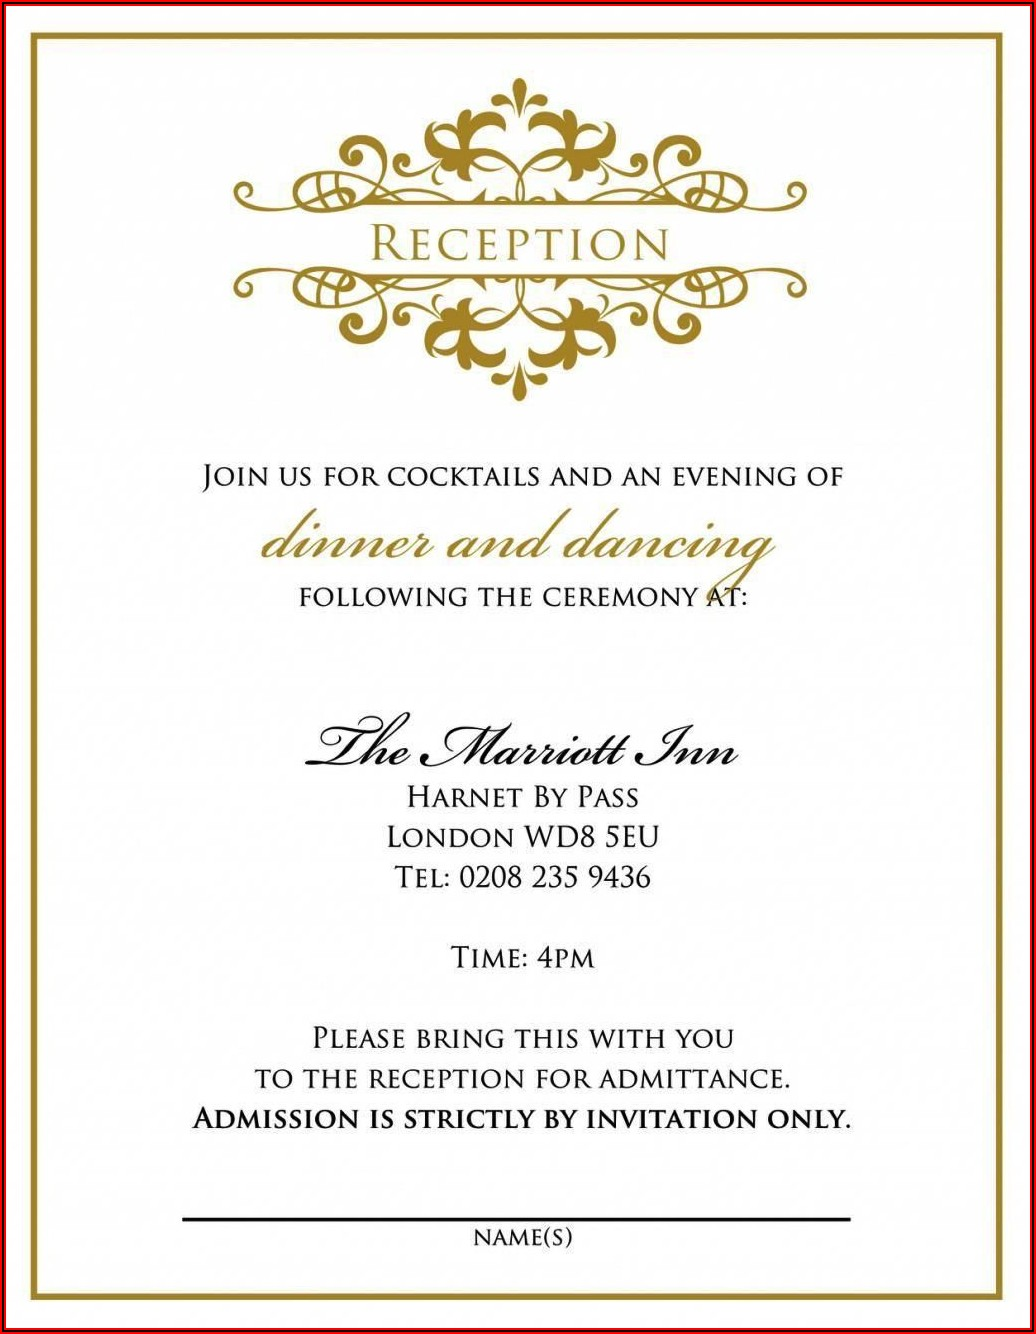 Marriage Invitation Template For Friends